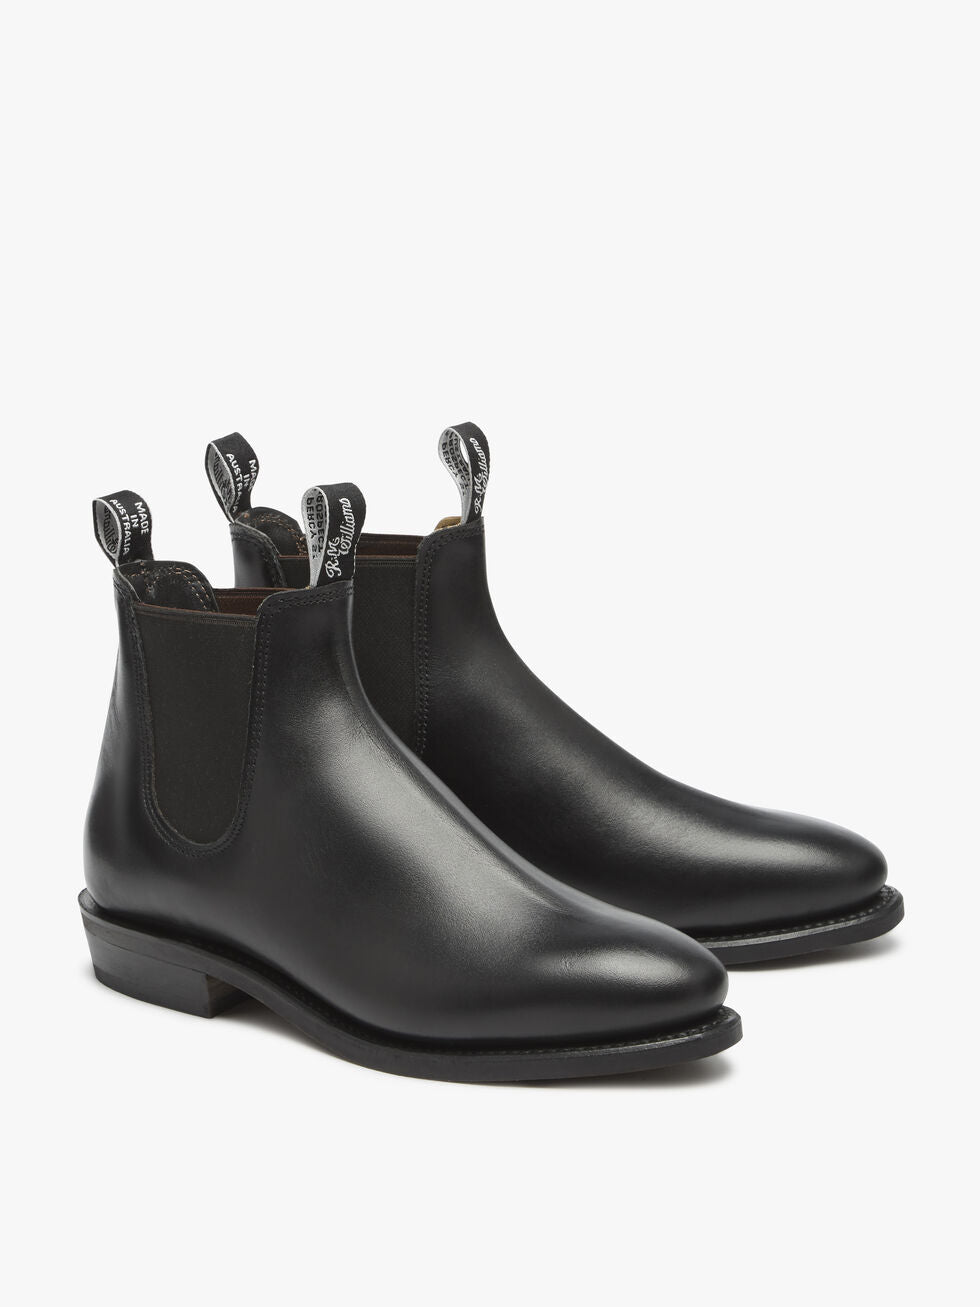 RM Williams Adelaide Boot (5280215924894)